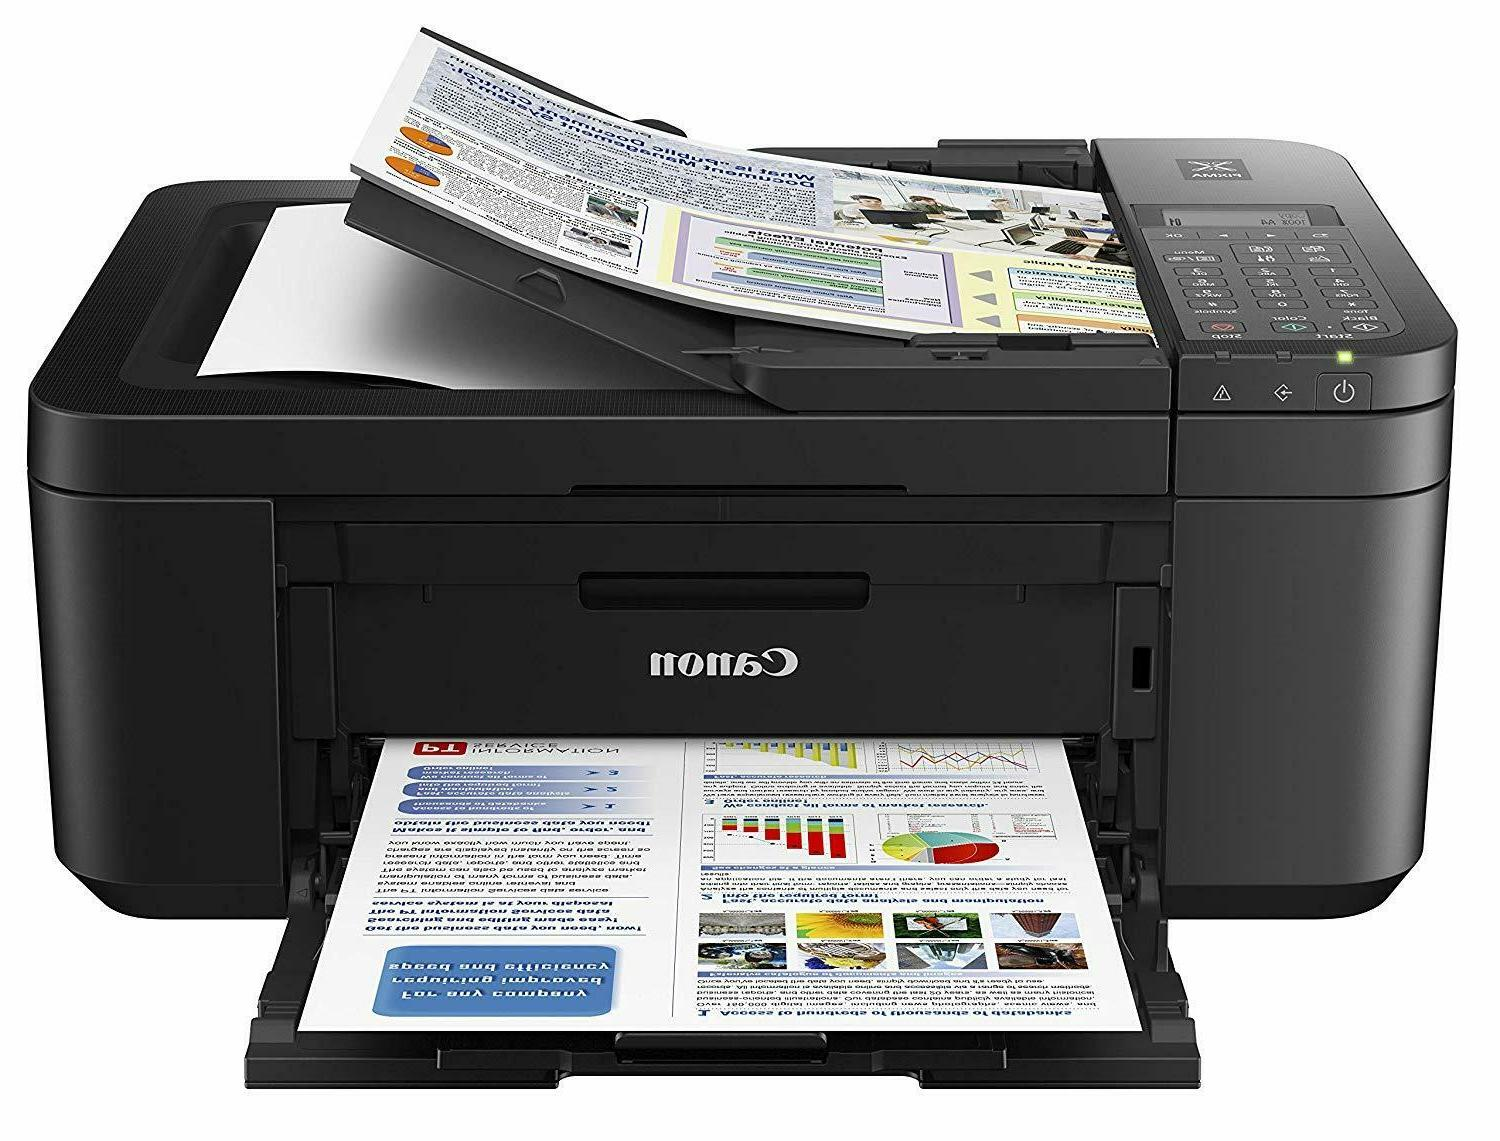 Canon Wireless Fax Printer All-in-One Inkjet Mobile